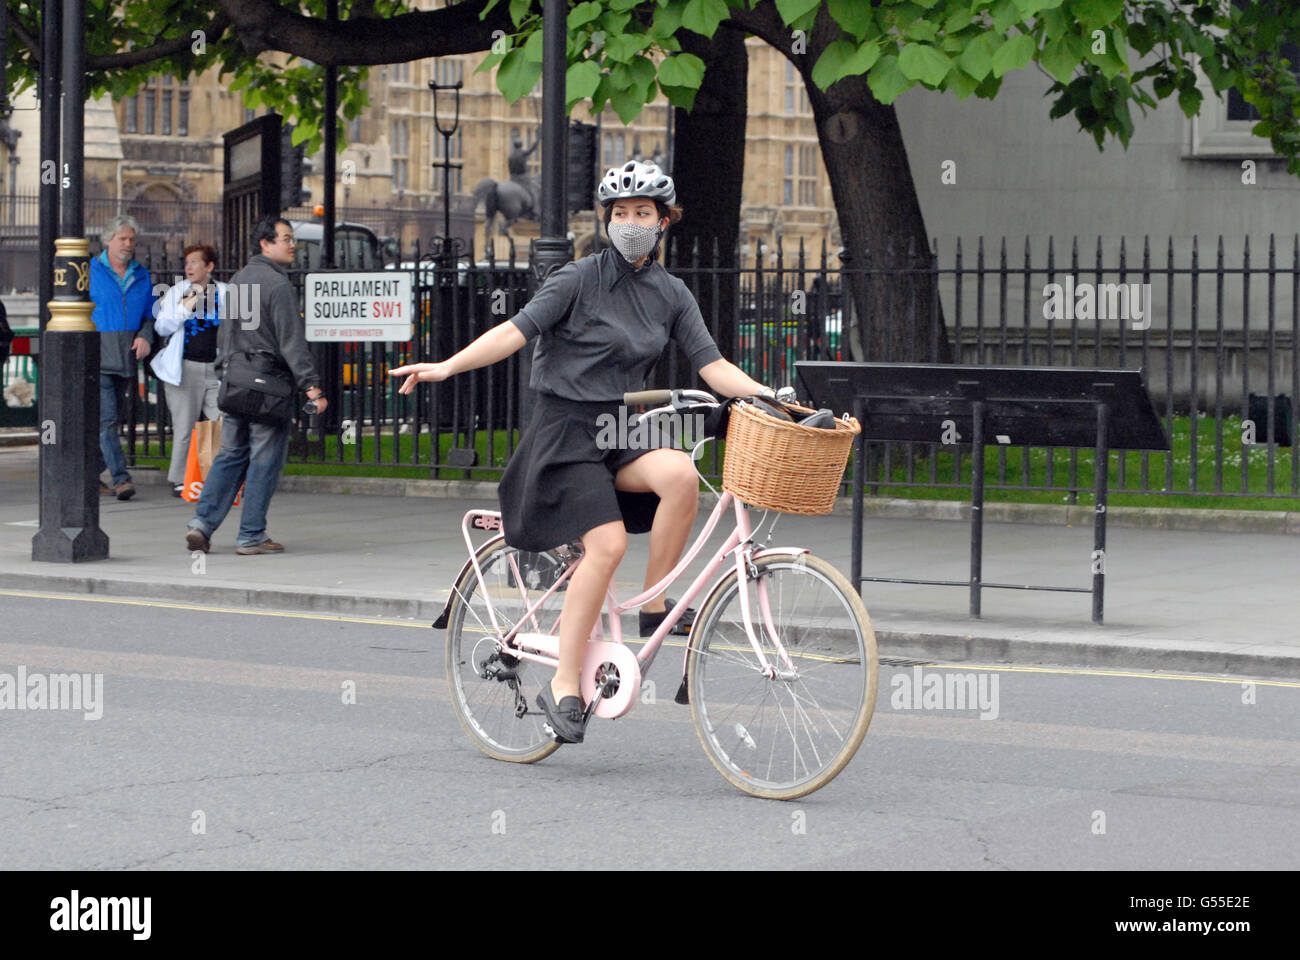 London, UK, 18 June 2016, Girl cyclist with air filter mask on pink bike in Parliament Square in Central London. - Stock Image